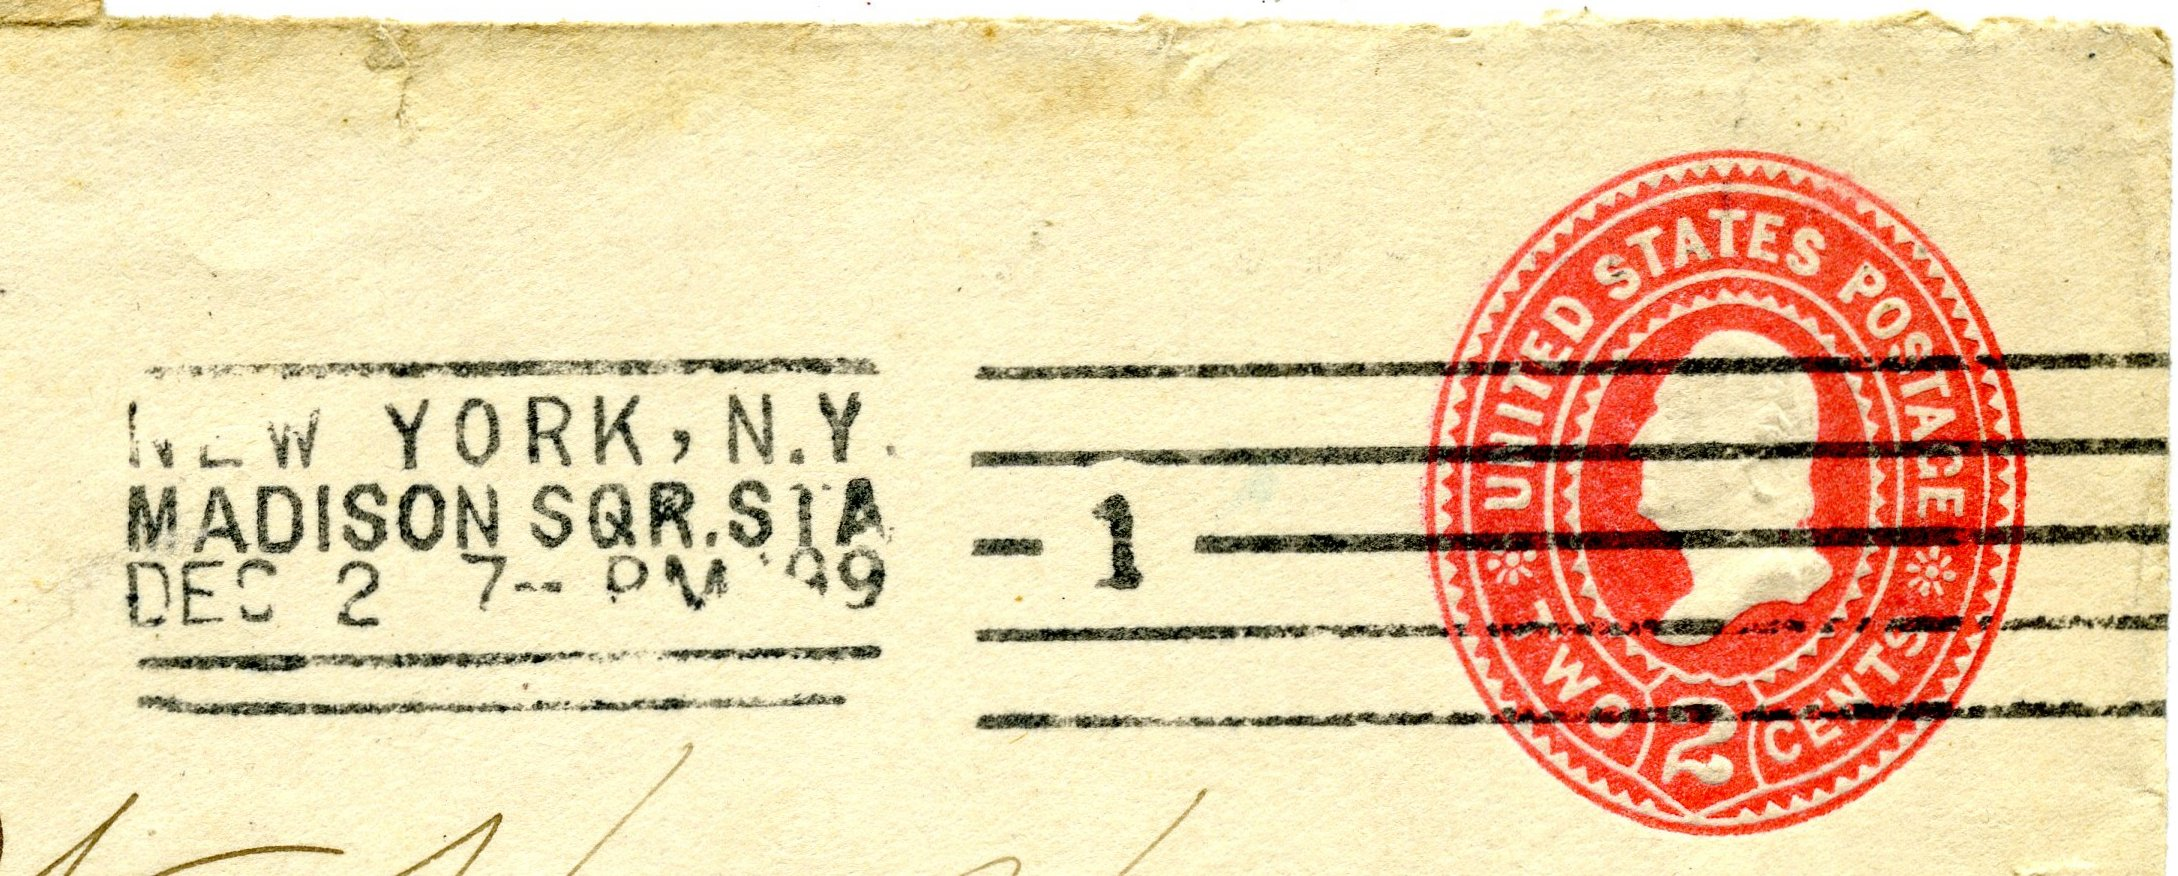 file barry cancellation us stamped envelope jpg wikimedia commons